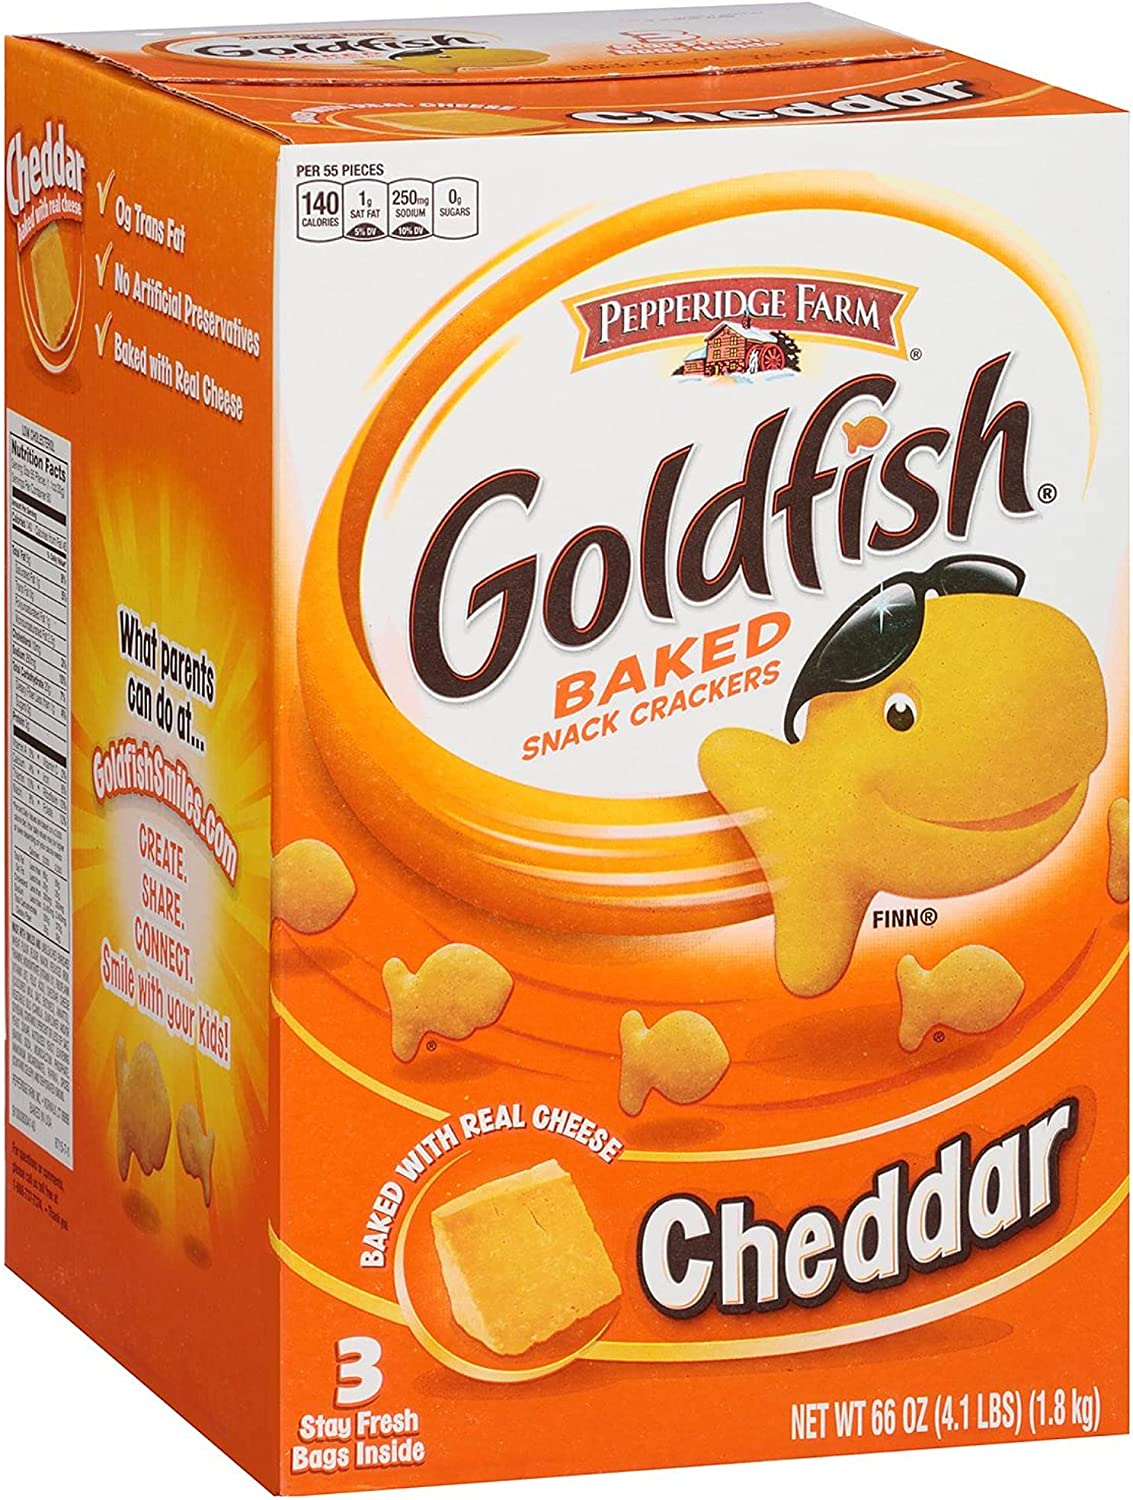 Pepperidge Farm Goldfish Crackers 22 Ct. 70% OFF Outlet 5 ☆ very popular 3 Wholesale Oz Chea